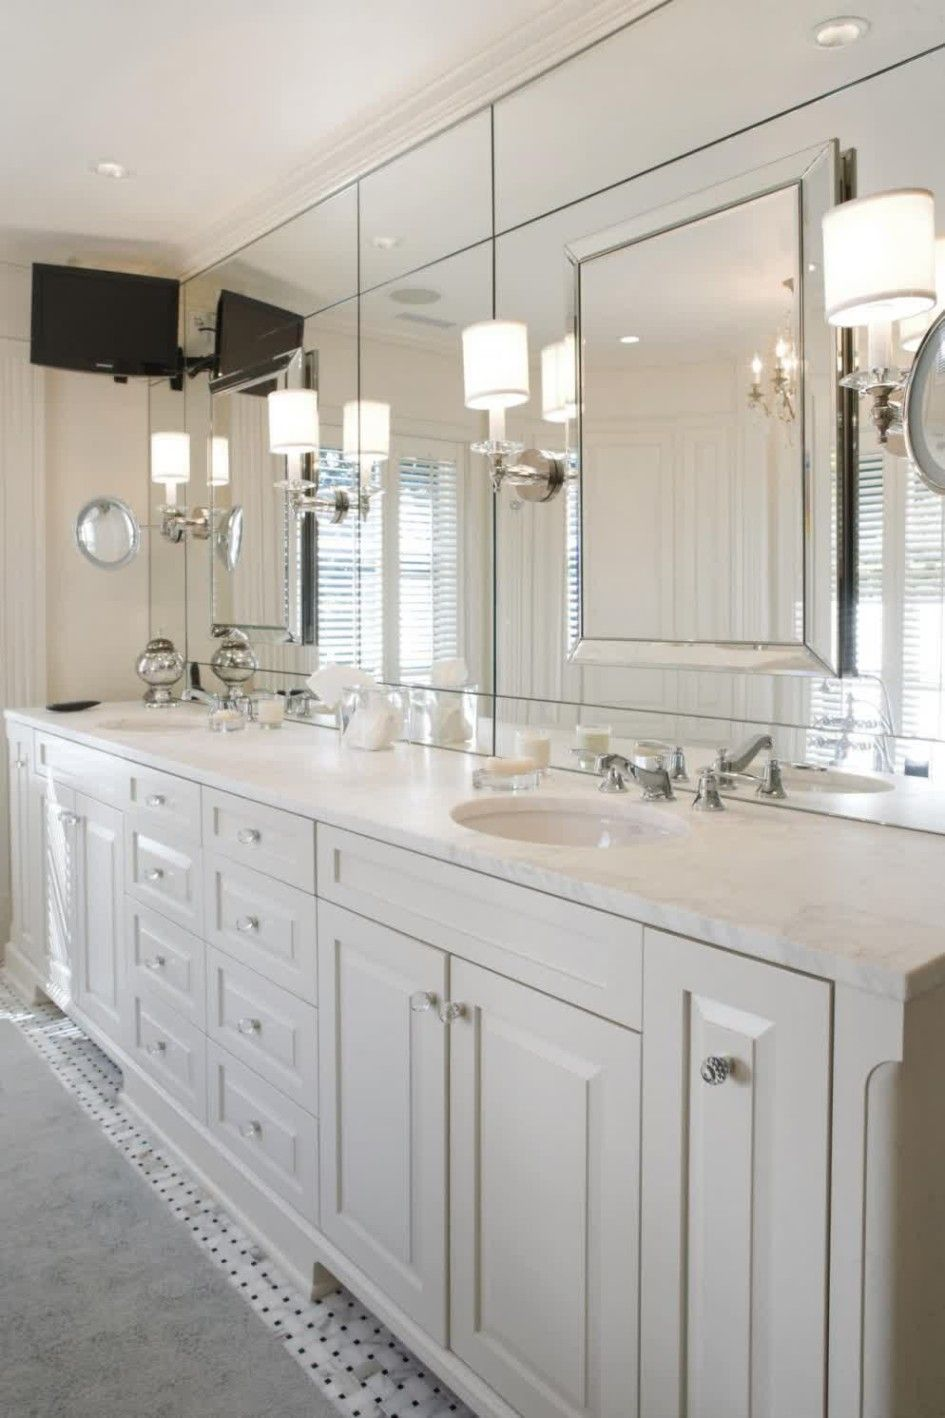 Frameless bathroom vanity mirrors - Bathroom Ideas Modern Bathroom Wall Sconces With Large Frameless Mirror Above Double Sink Bathroom Vanity